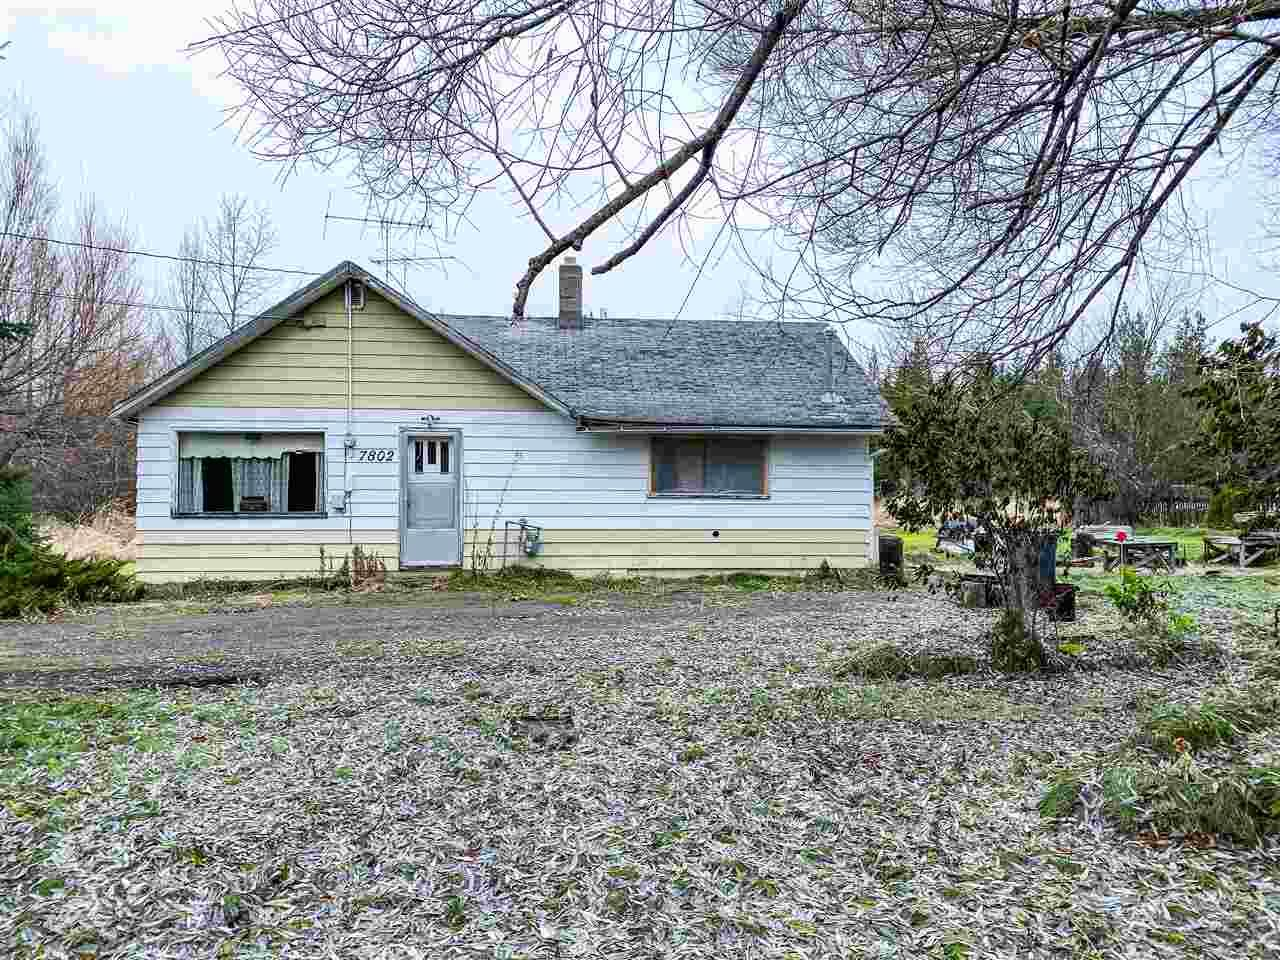 Main Photo: 7802 GISCOME Road in Prince George: North Blackburn House for sale (PG City South East (Zone 75))  : MLS®# R2515369